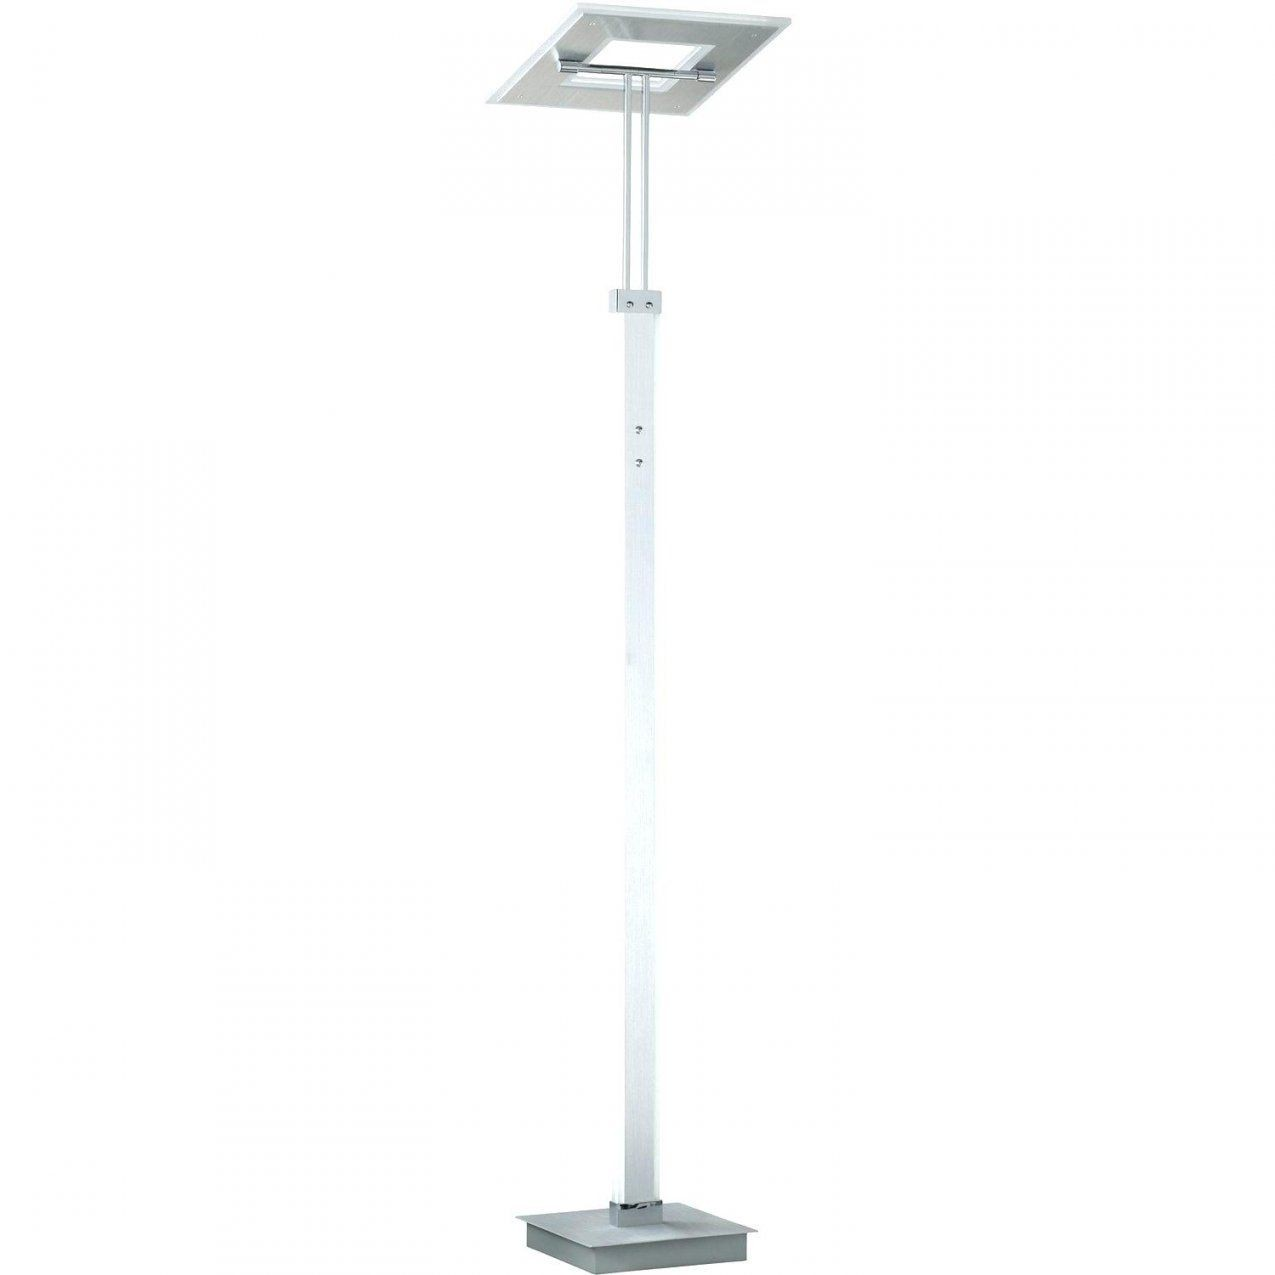 Led Deckenfluter Dimmbar Mit Leseleuchte Floor Nickel Matt 180 Cm von Led Deckenfluter Dimmbar Mit Leseleuchte Messing Photo